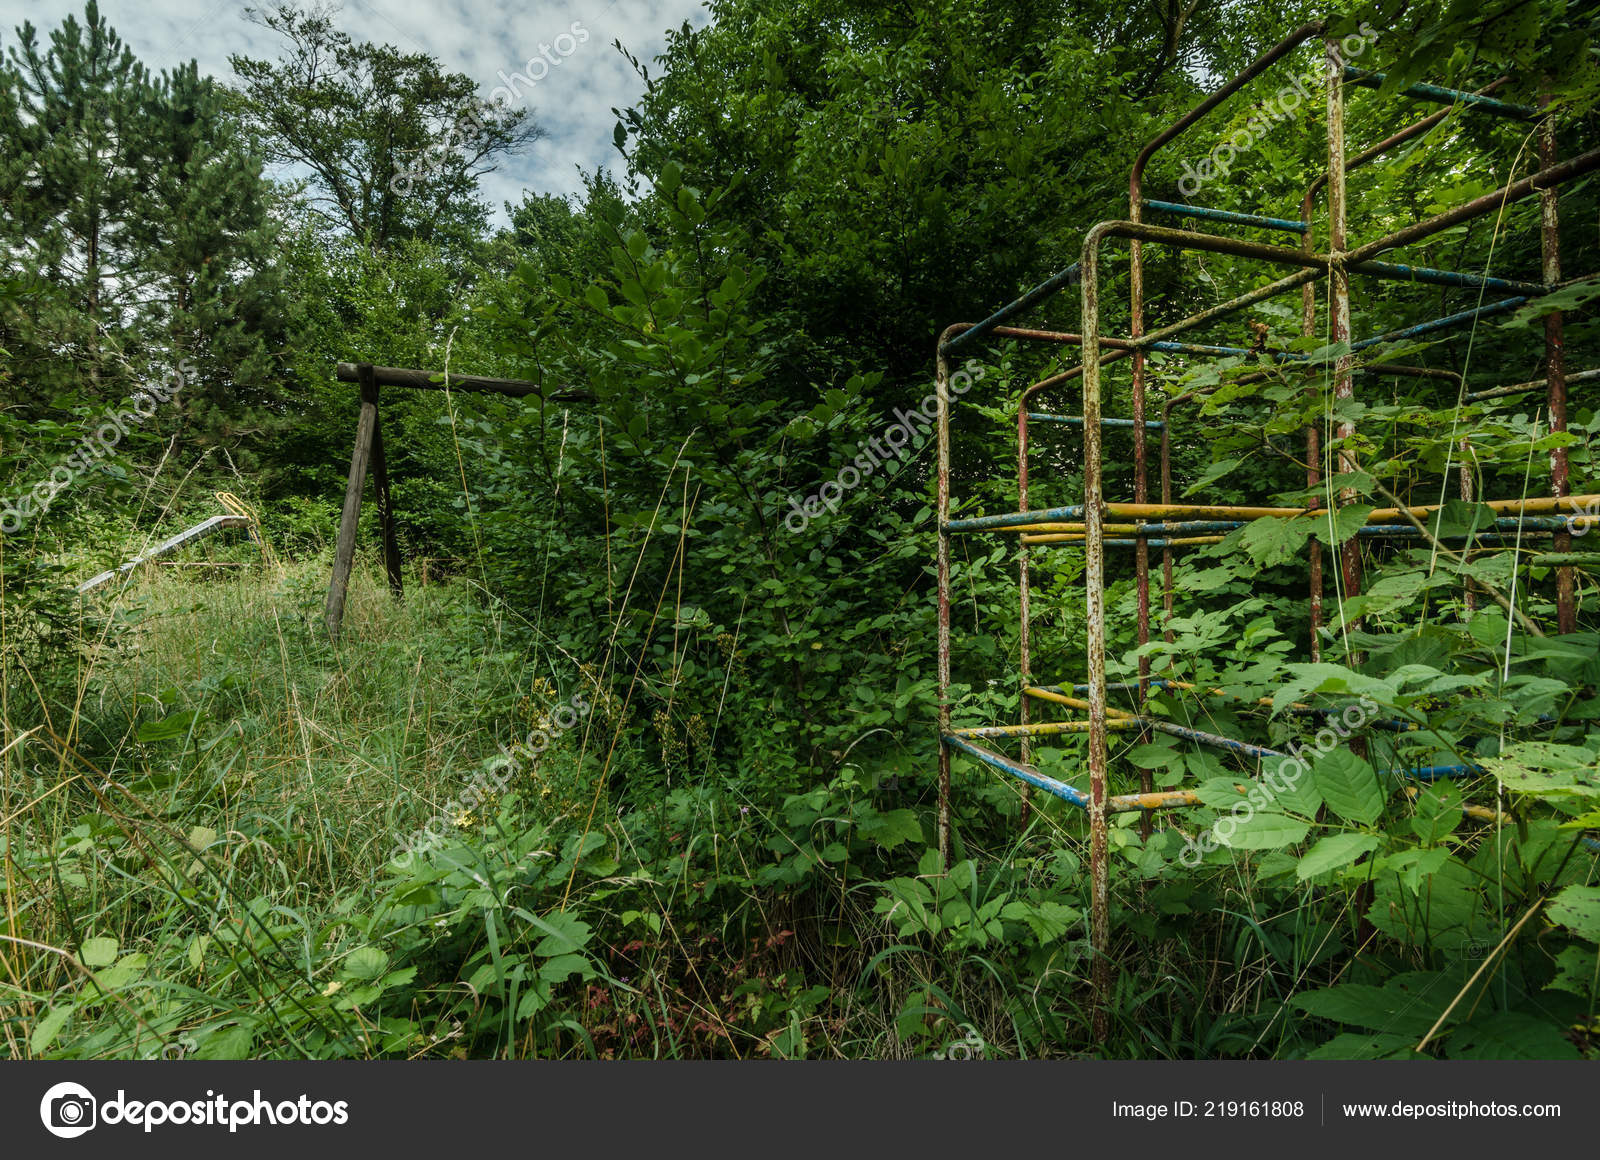 Overgrown Old Abandoned Children Playground Stock Photo C Thomaseder 219161808